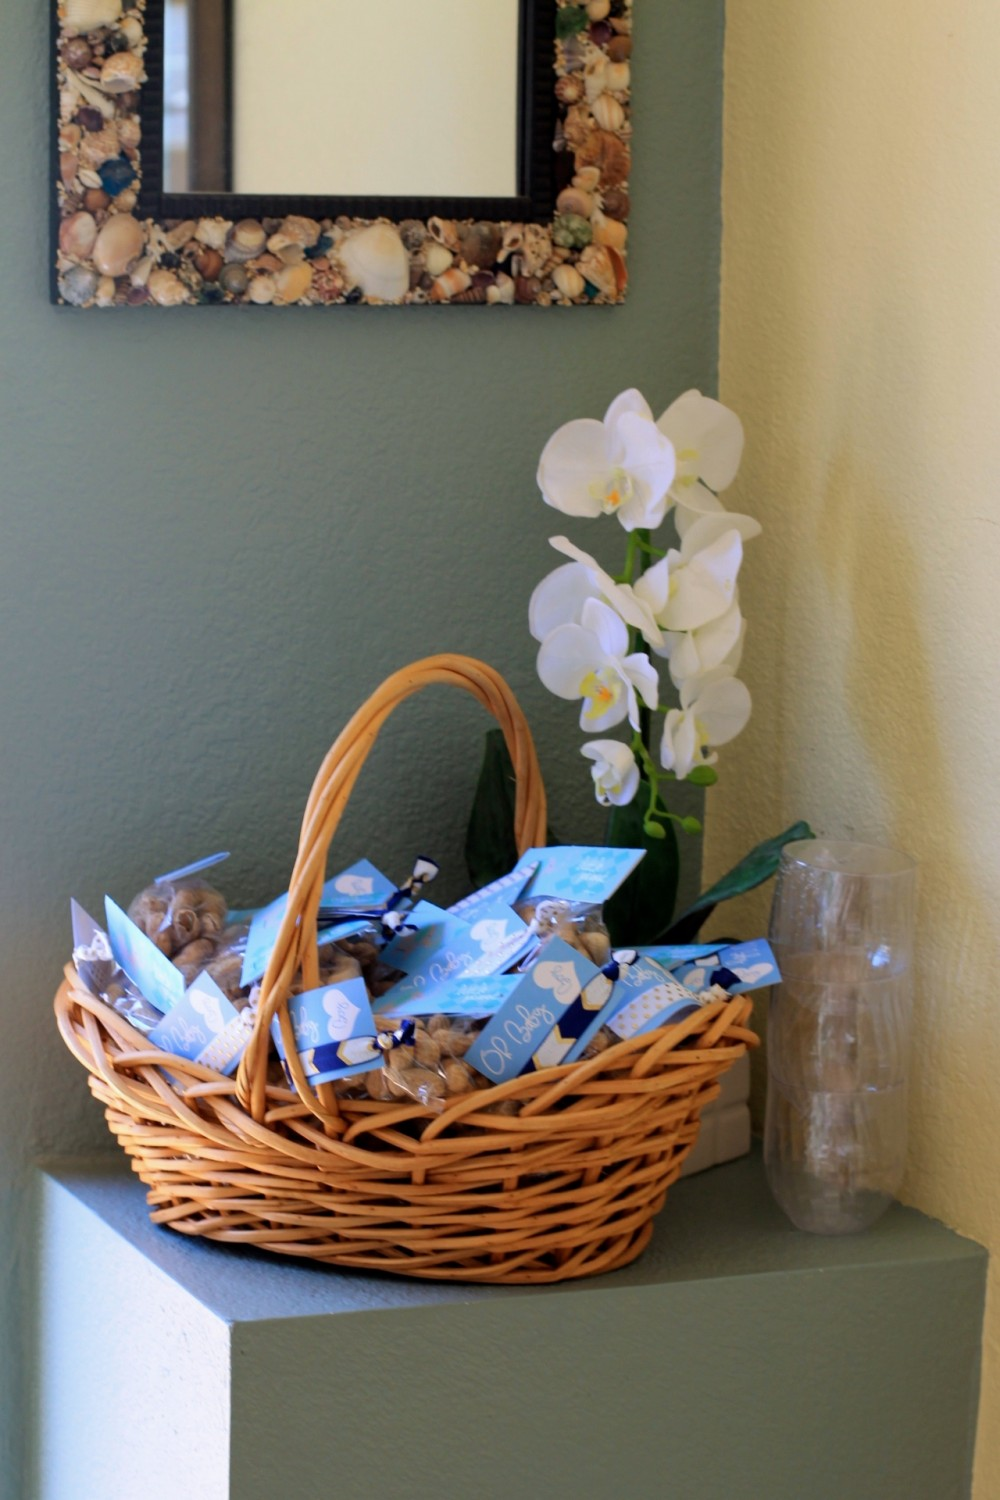 Baby Shower-Baby Shower Gifts-DIY Projects-Baby Shower DIY